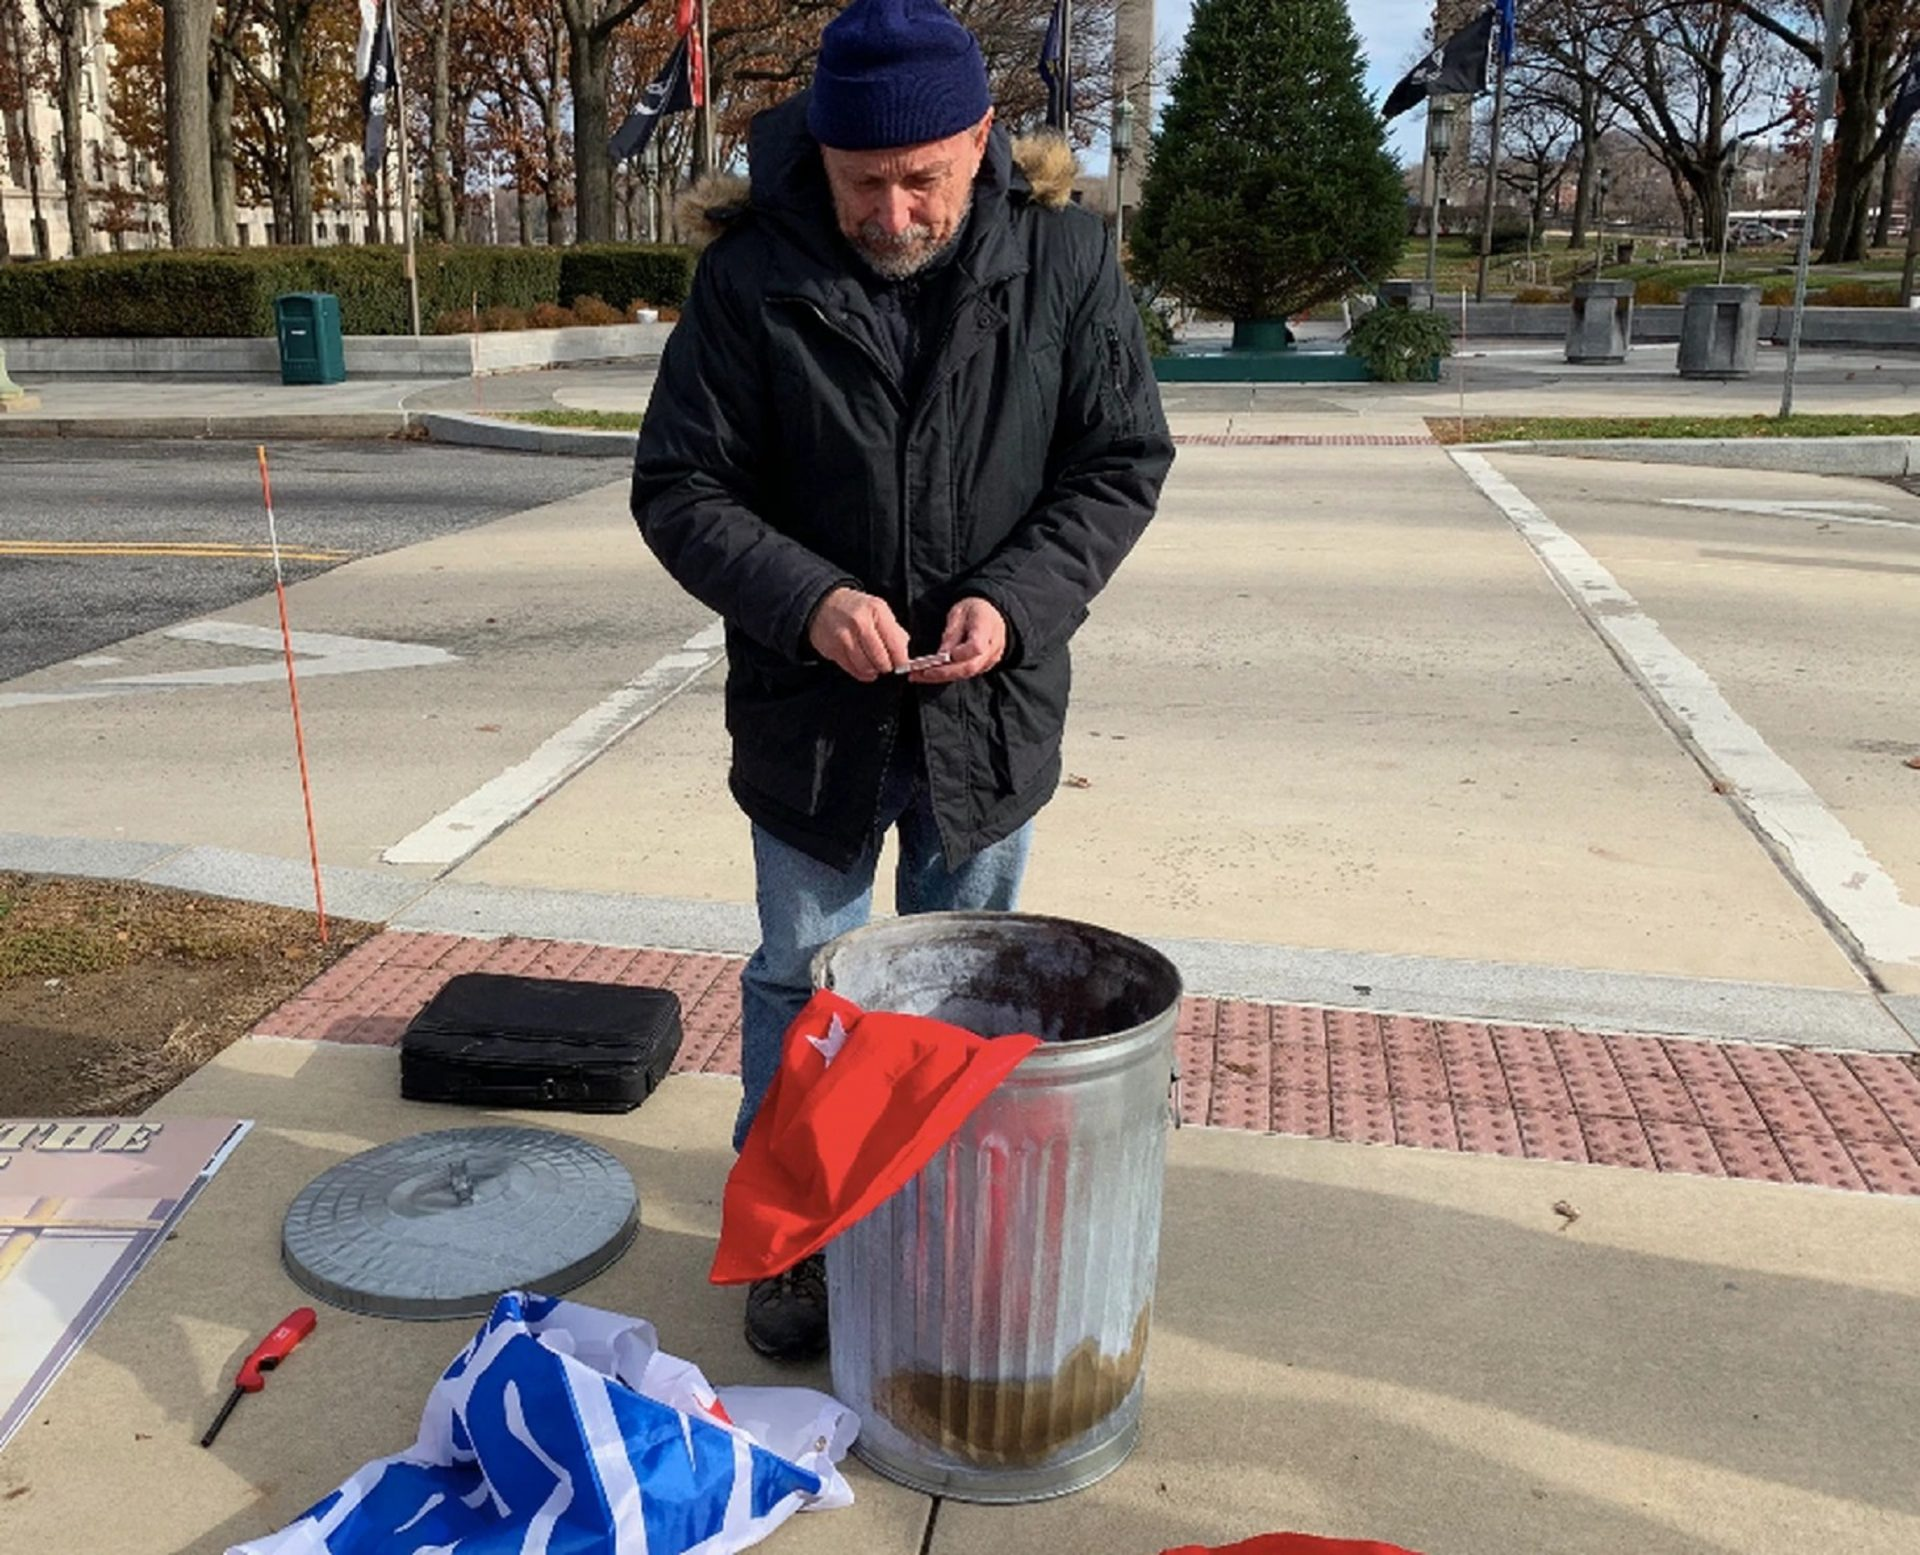 Citizen activist Gene Stilp prepares to strike a match to set one of his Trump campaign flags on fire outside the Pa. Capitol on Dec. 5, 2019. On Tuesday, a Harrisburg district judge found him not guilty of violating a city burn ban.